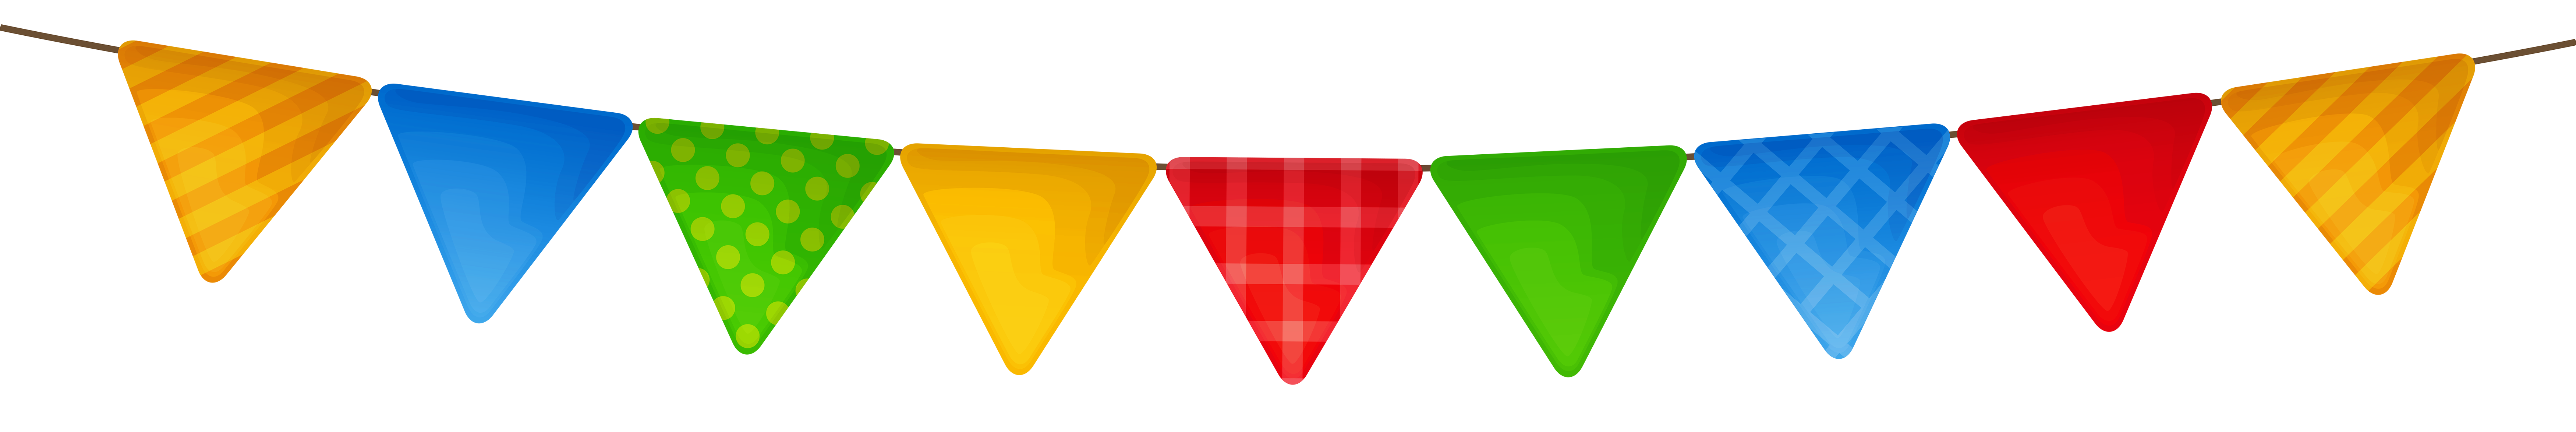 Triangle clipart streamer Streamer PNG size Colorful Gallery